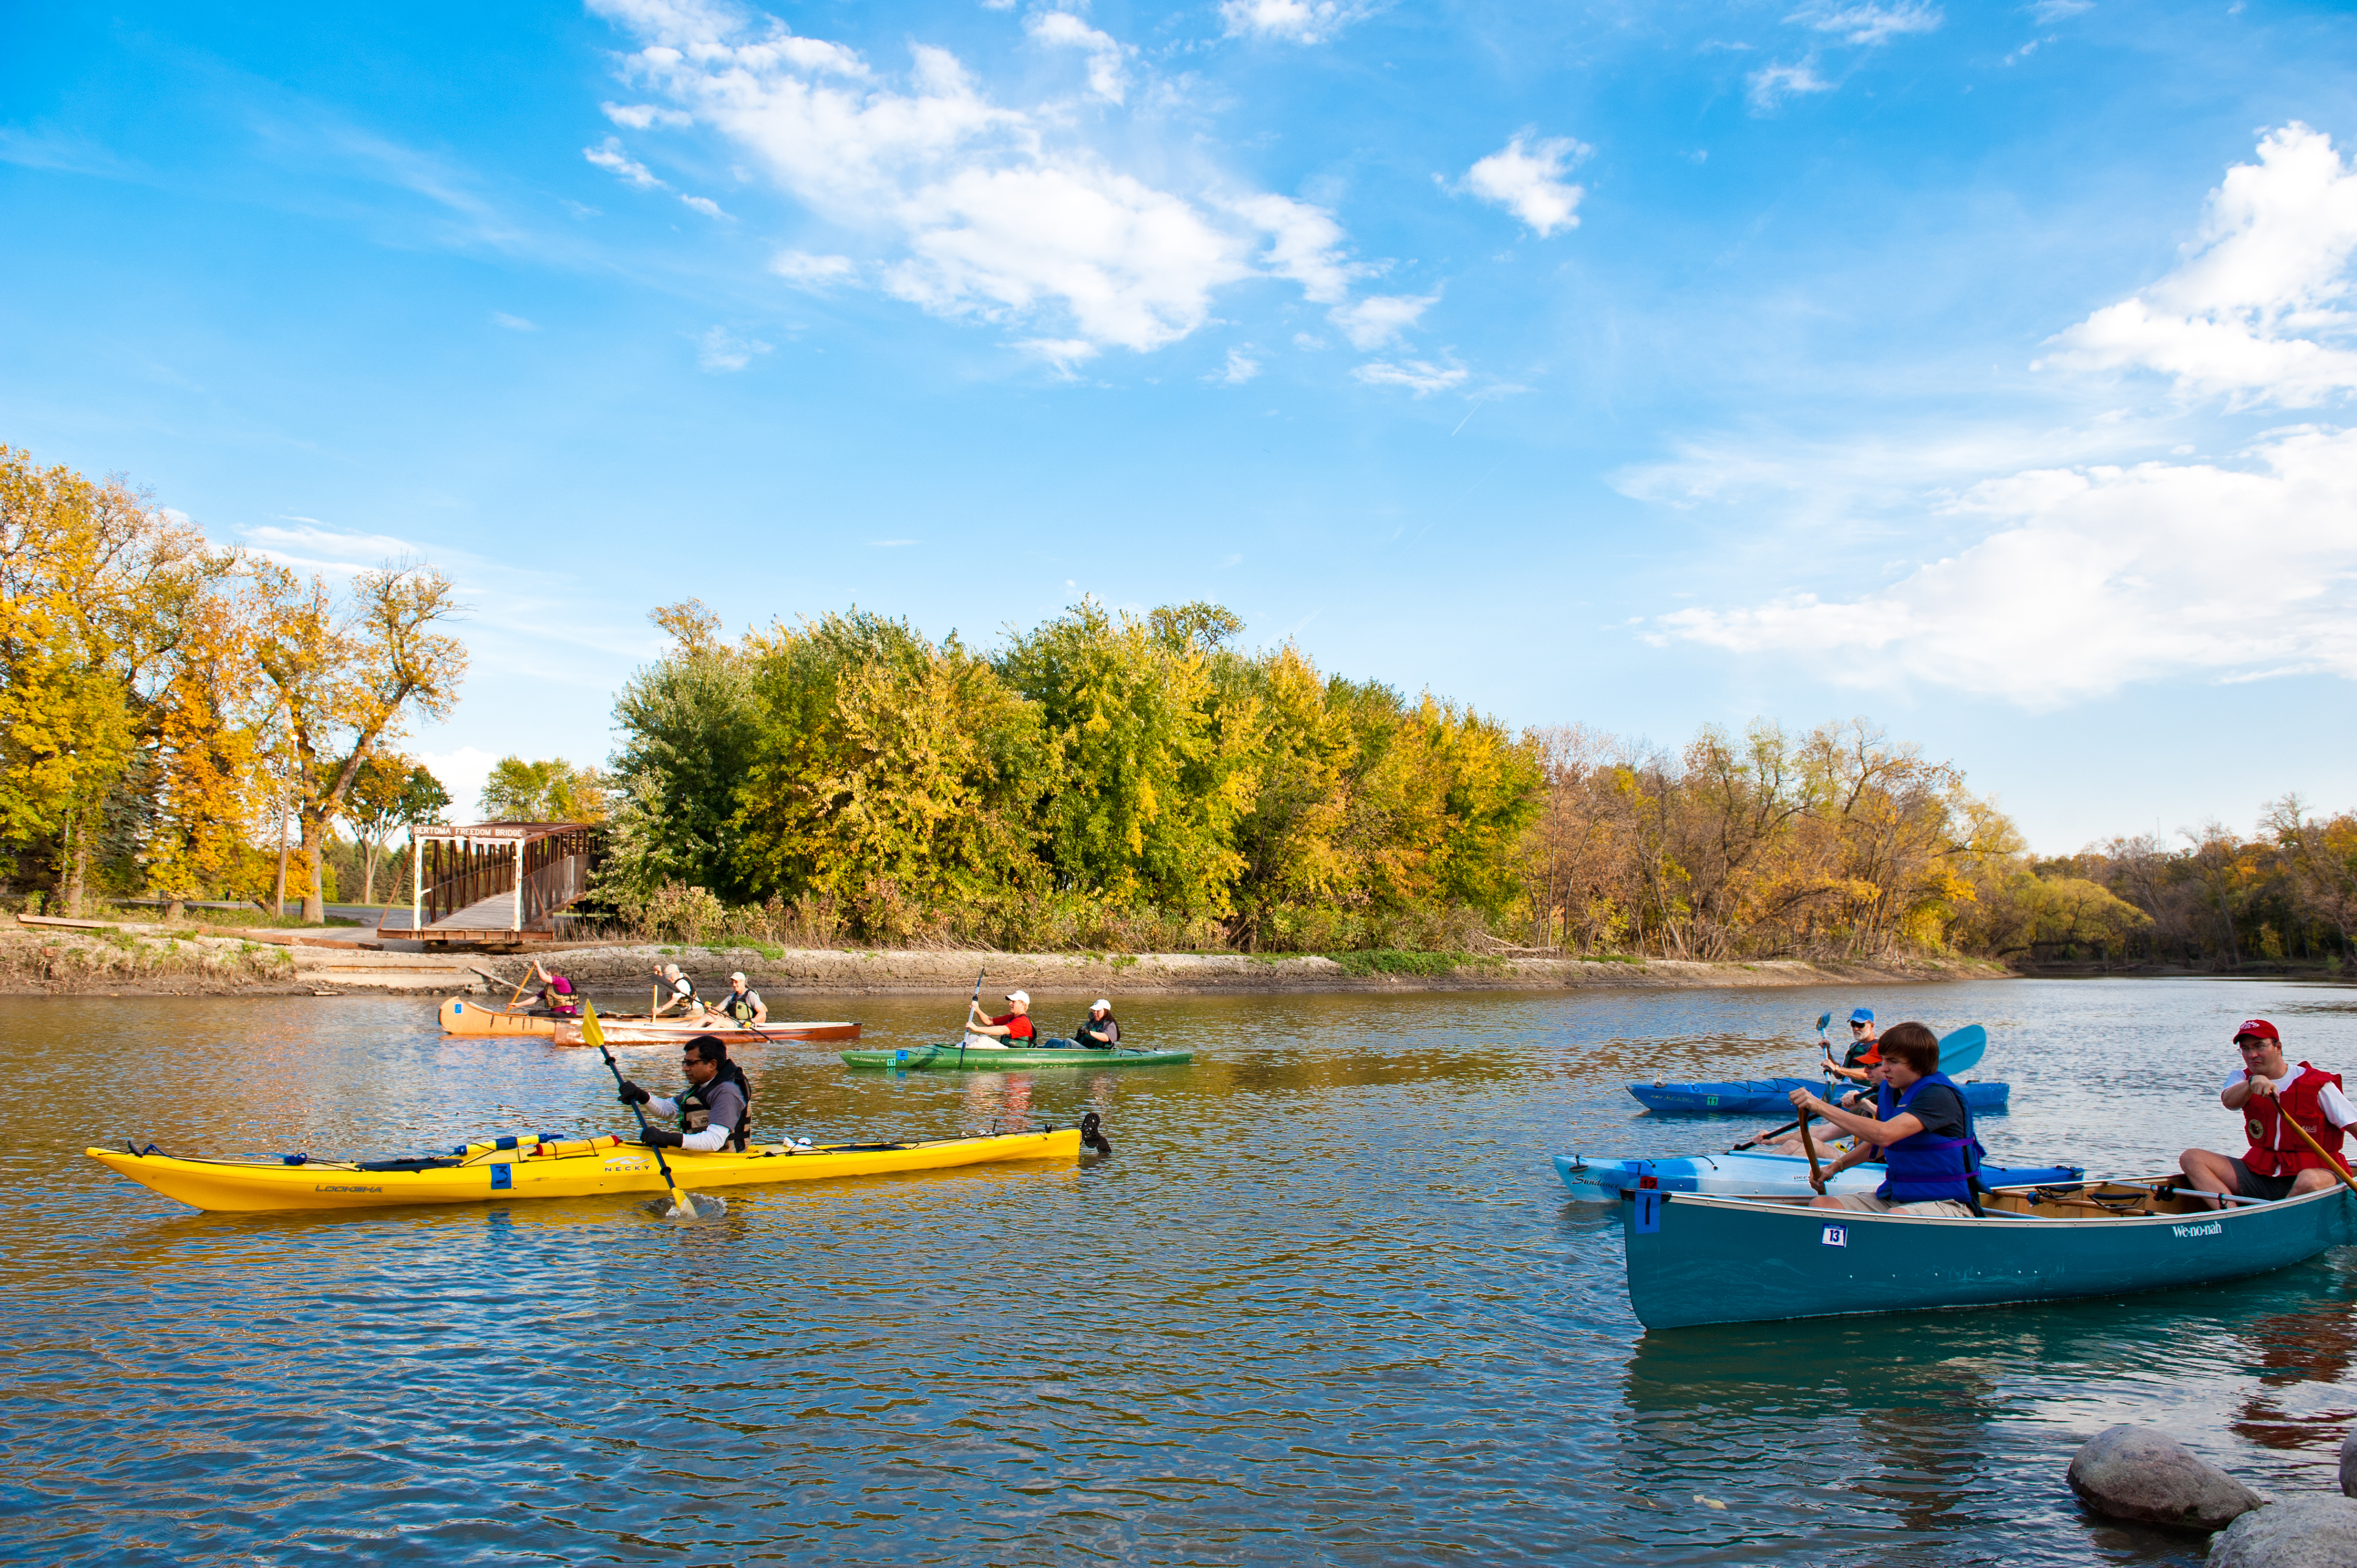 Race the Red_River Canoeing & Kayaking (11)